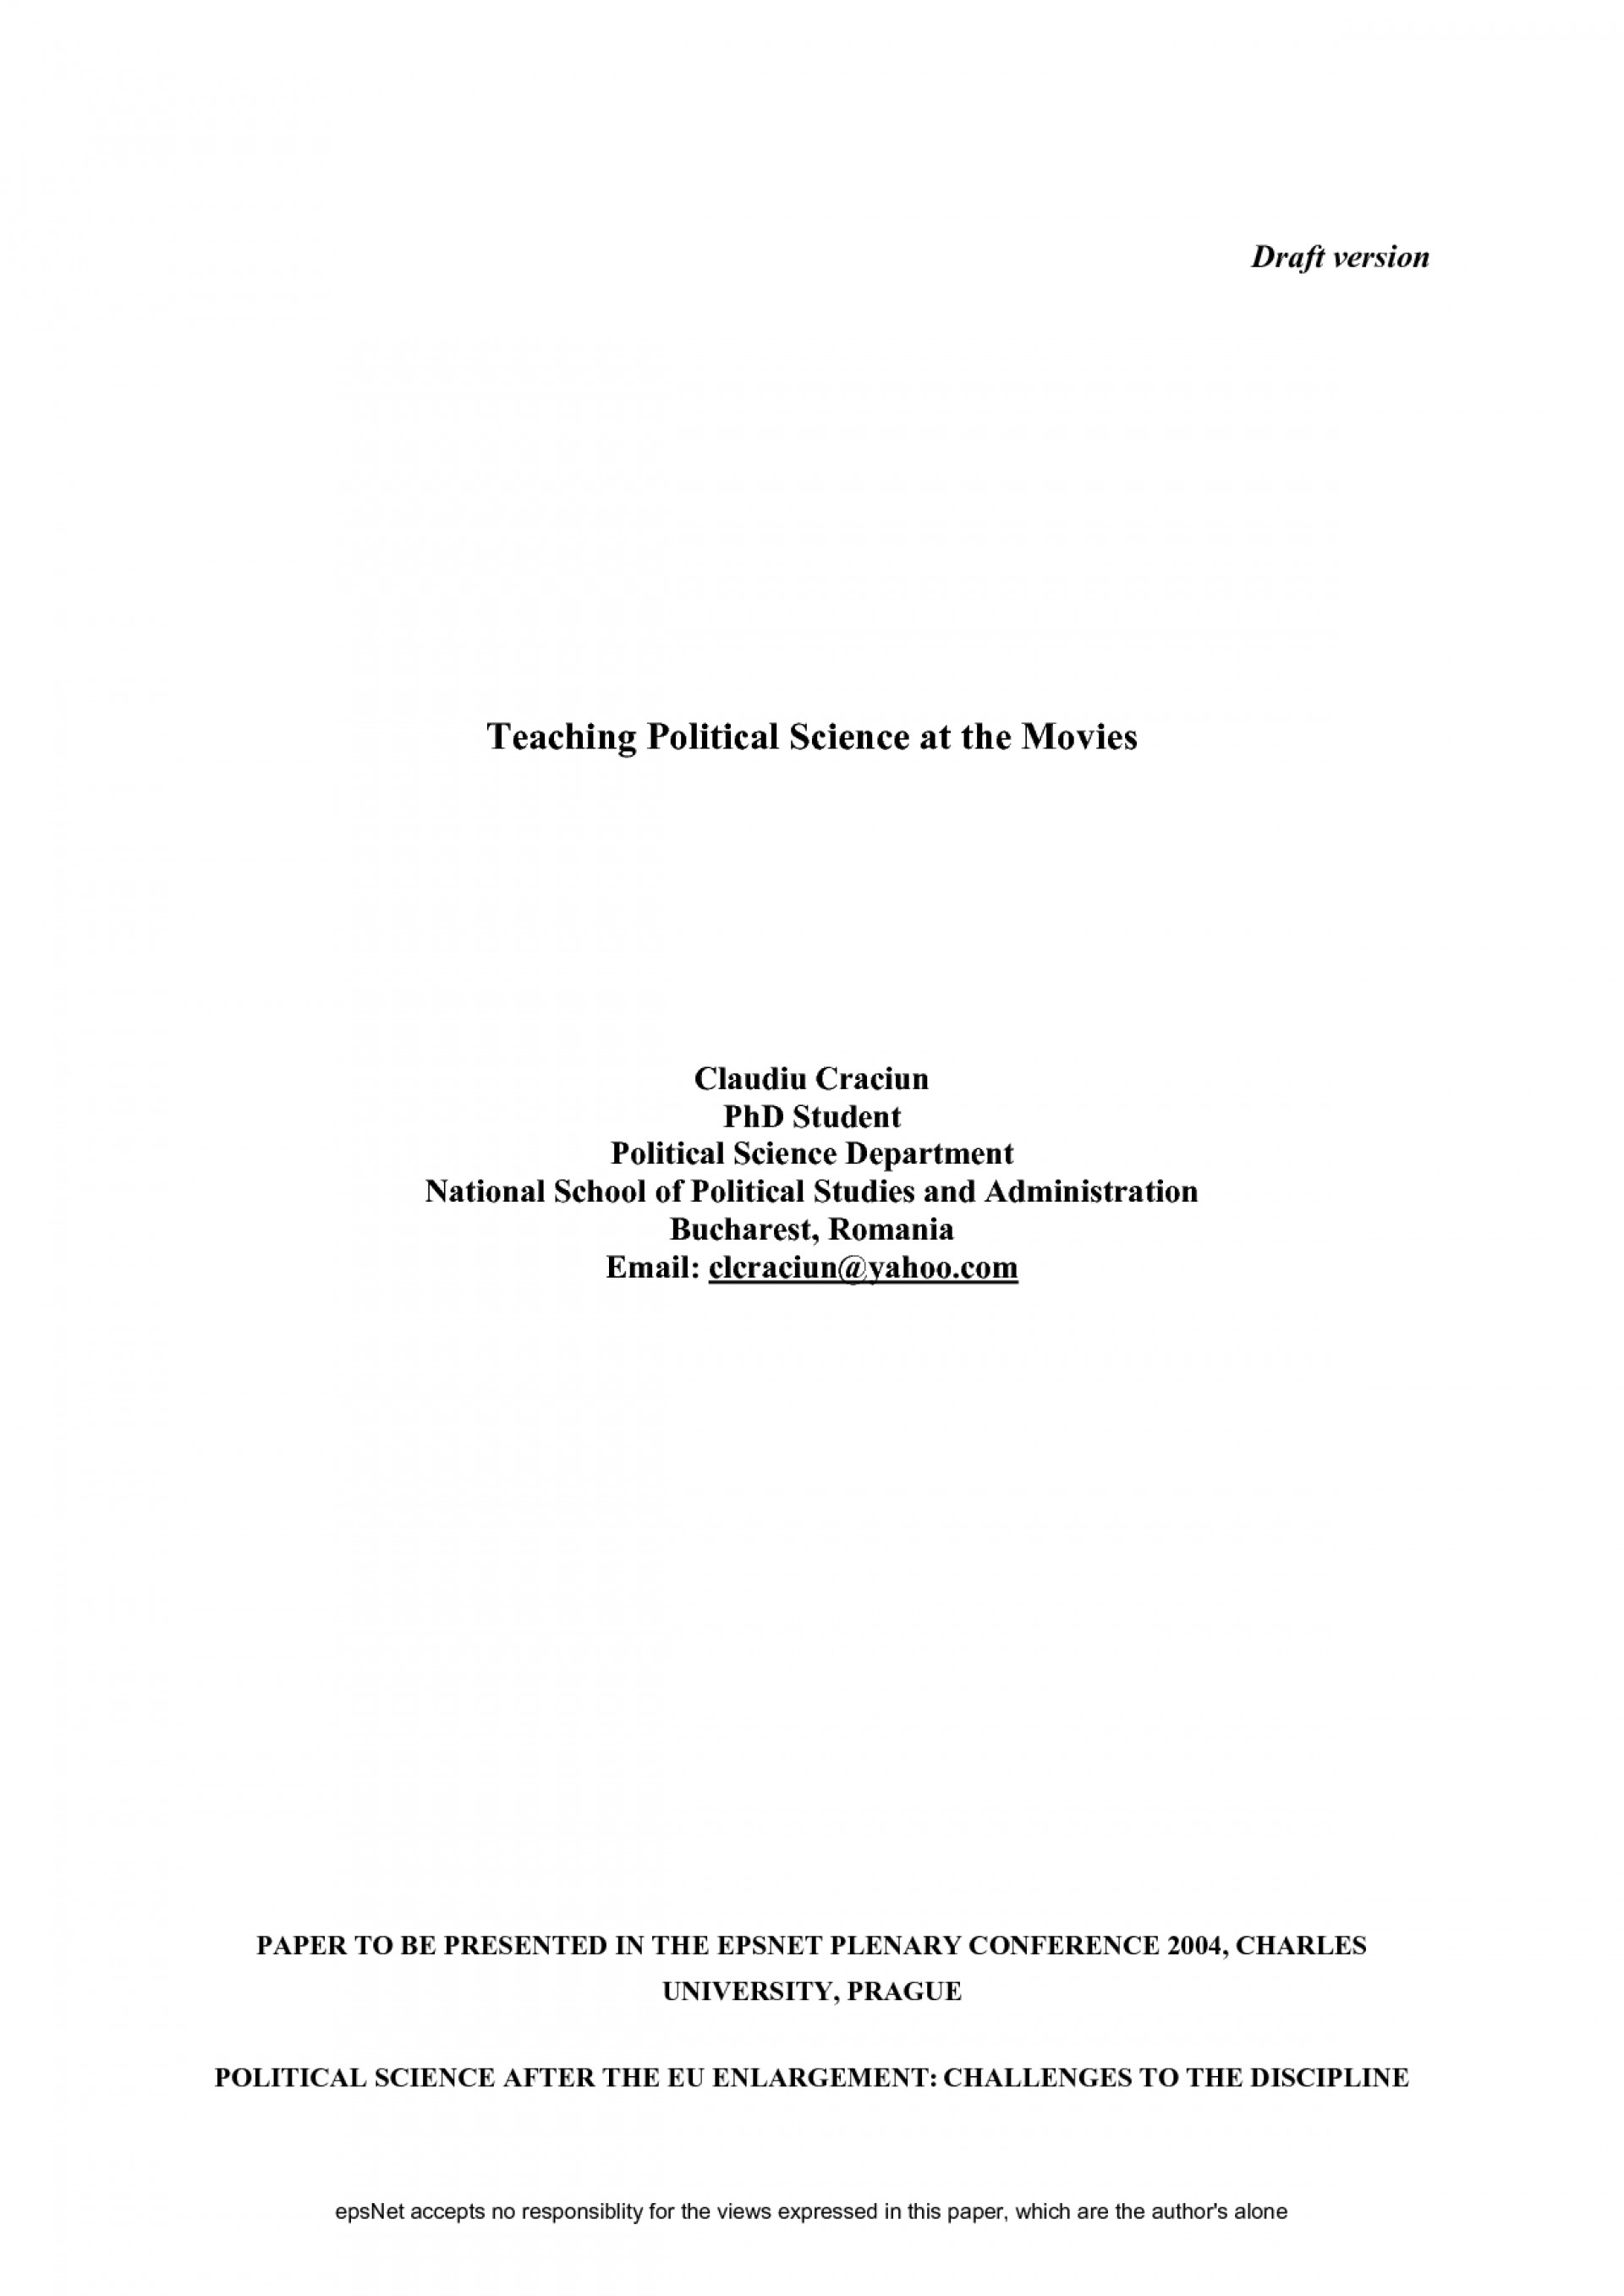 019 Research Paper Apsa Example Cover Page 319500 Template For Rare Apa Sample How To Do A Format 1920